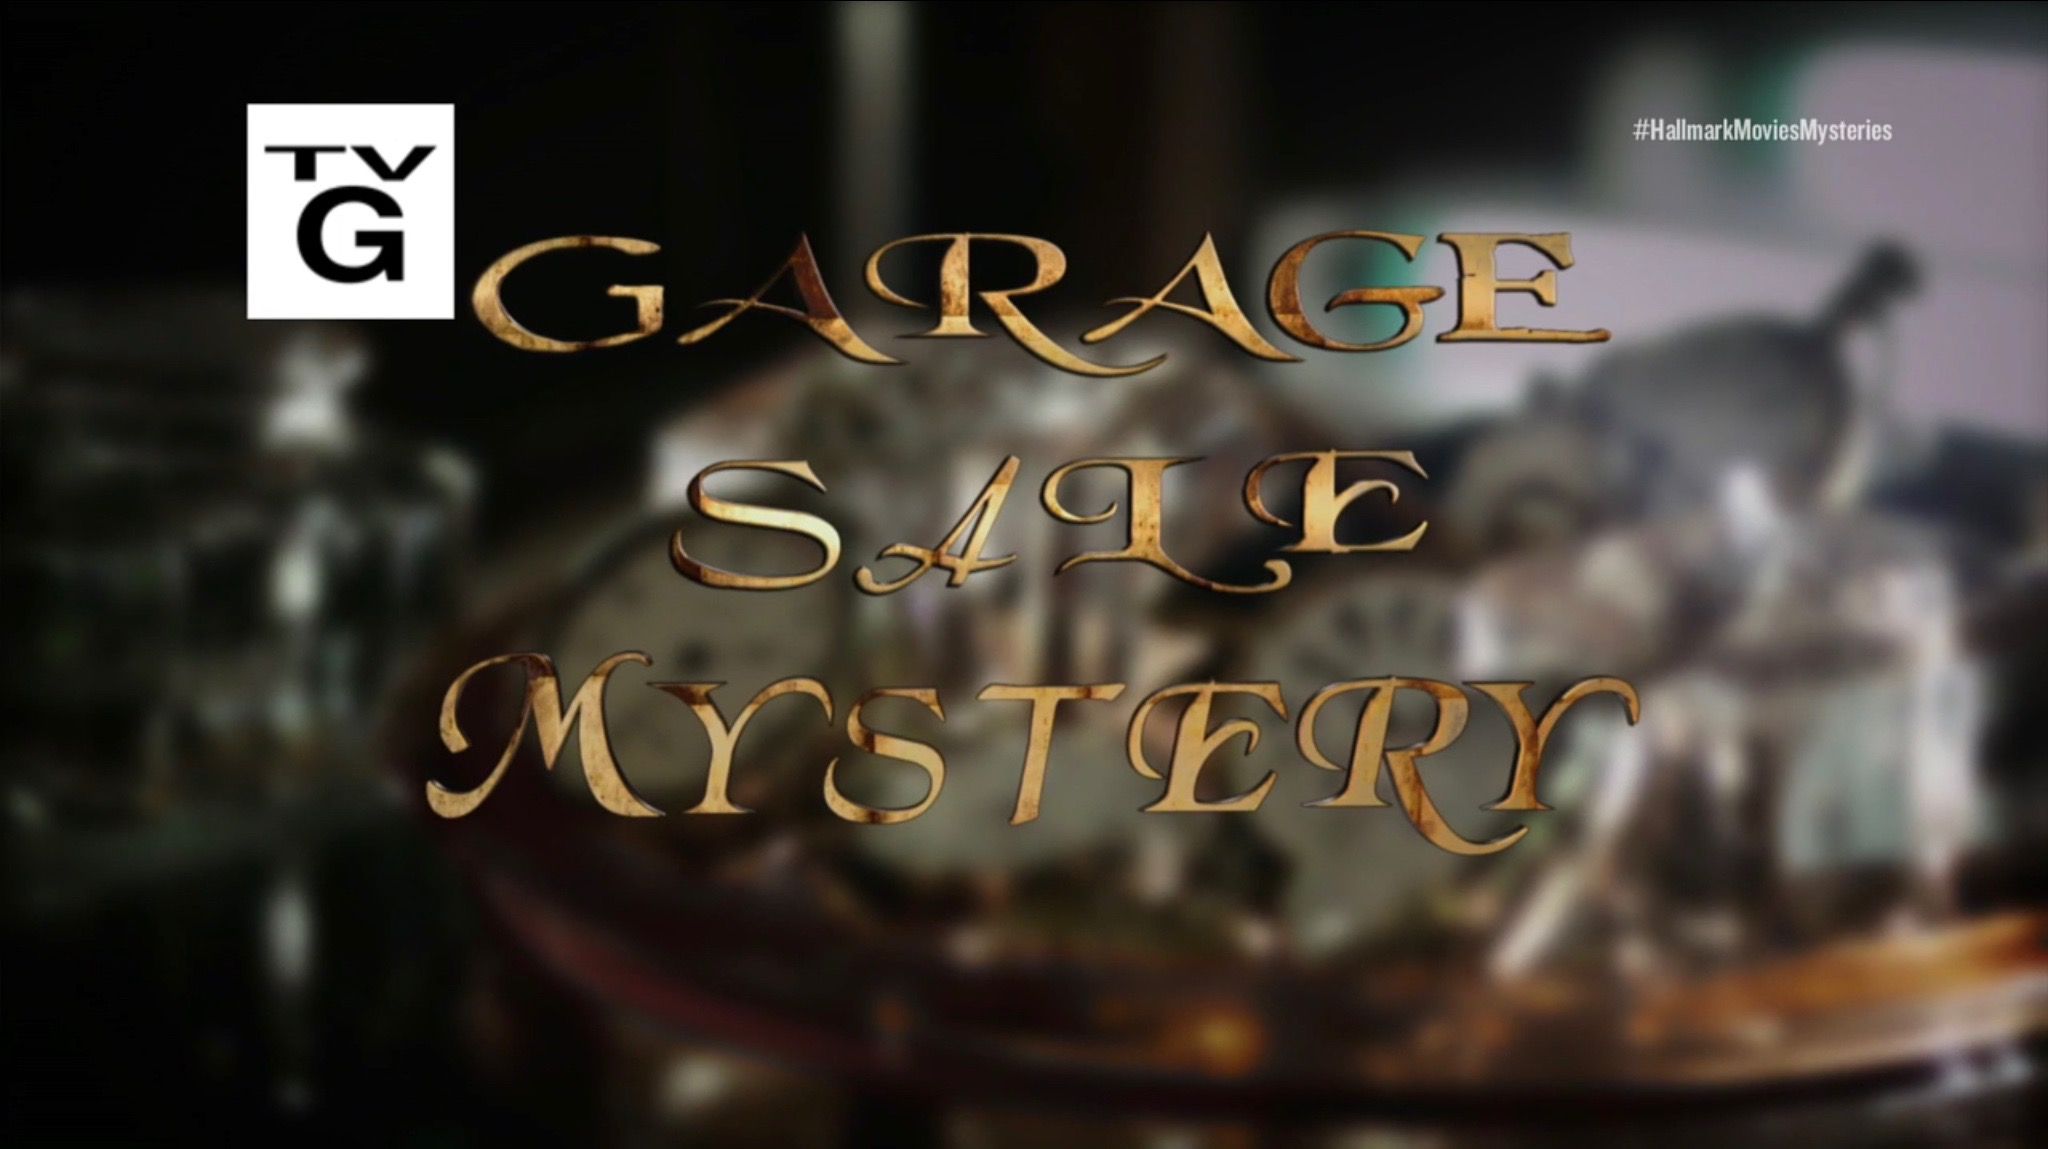 Garage Sale Mystery The Beach hallmark review: garage sale mystery: guilty until proven